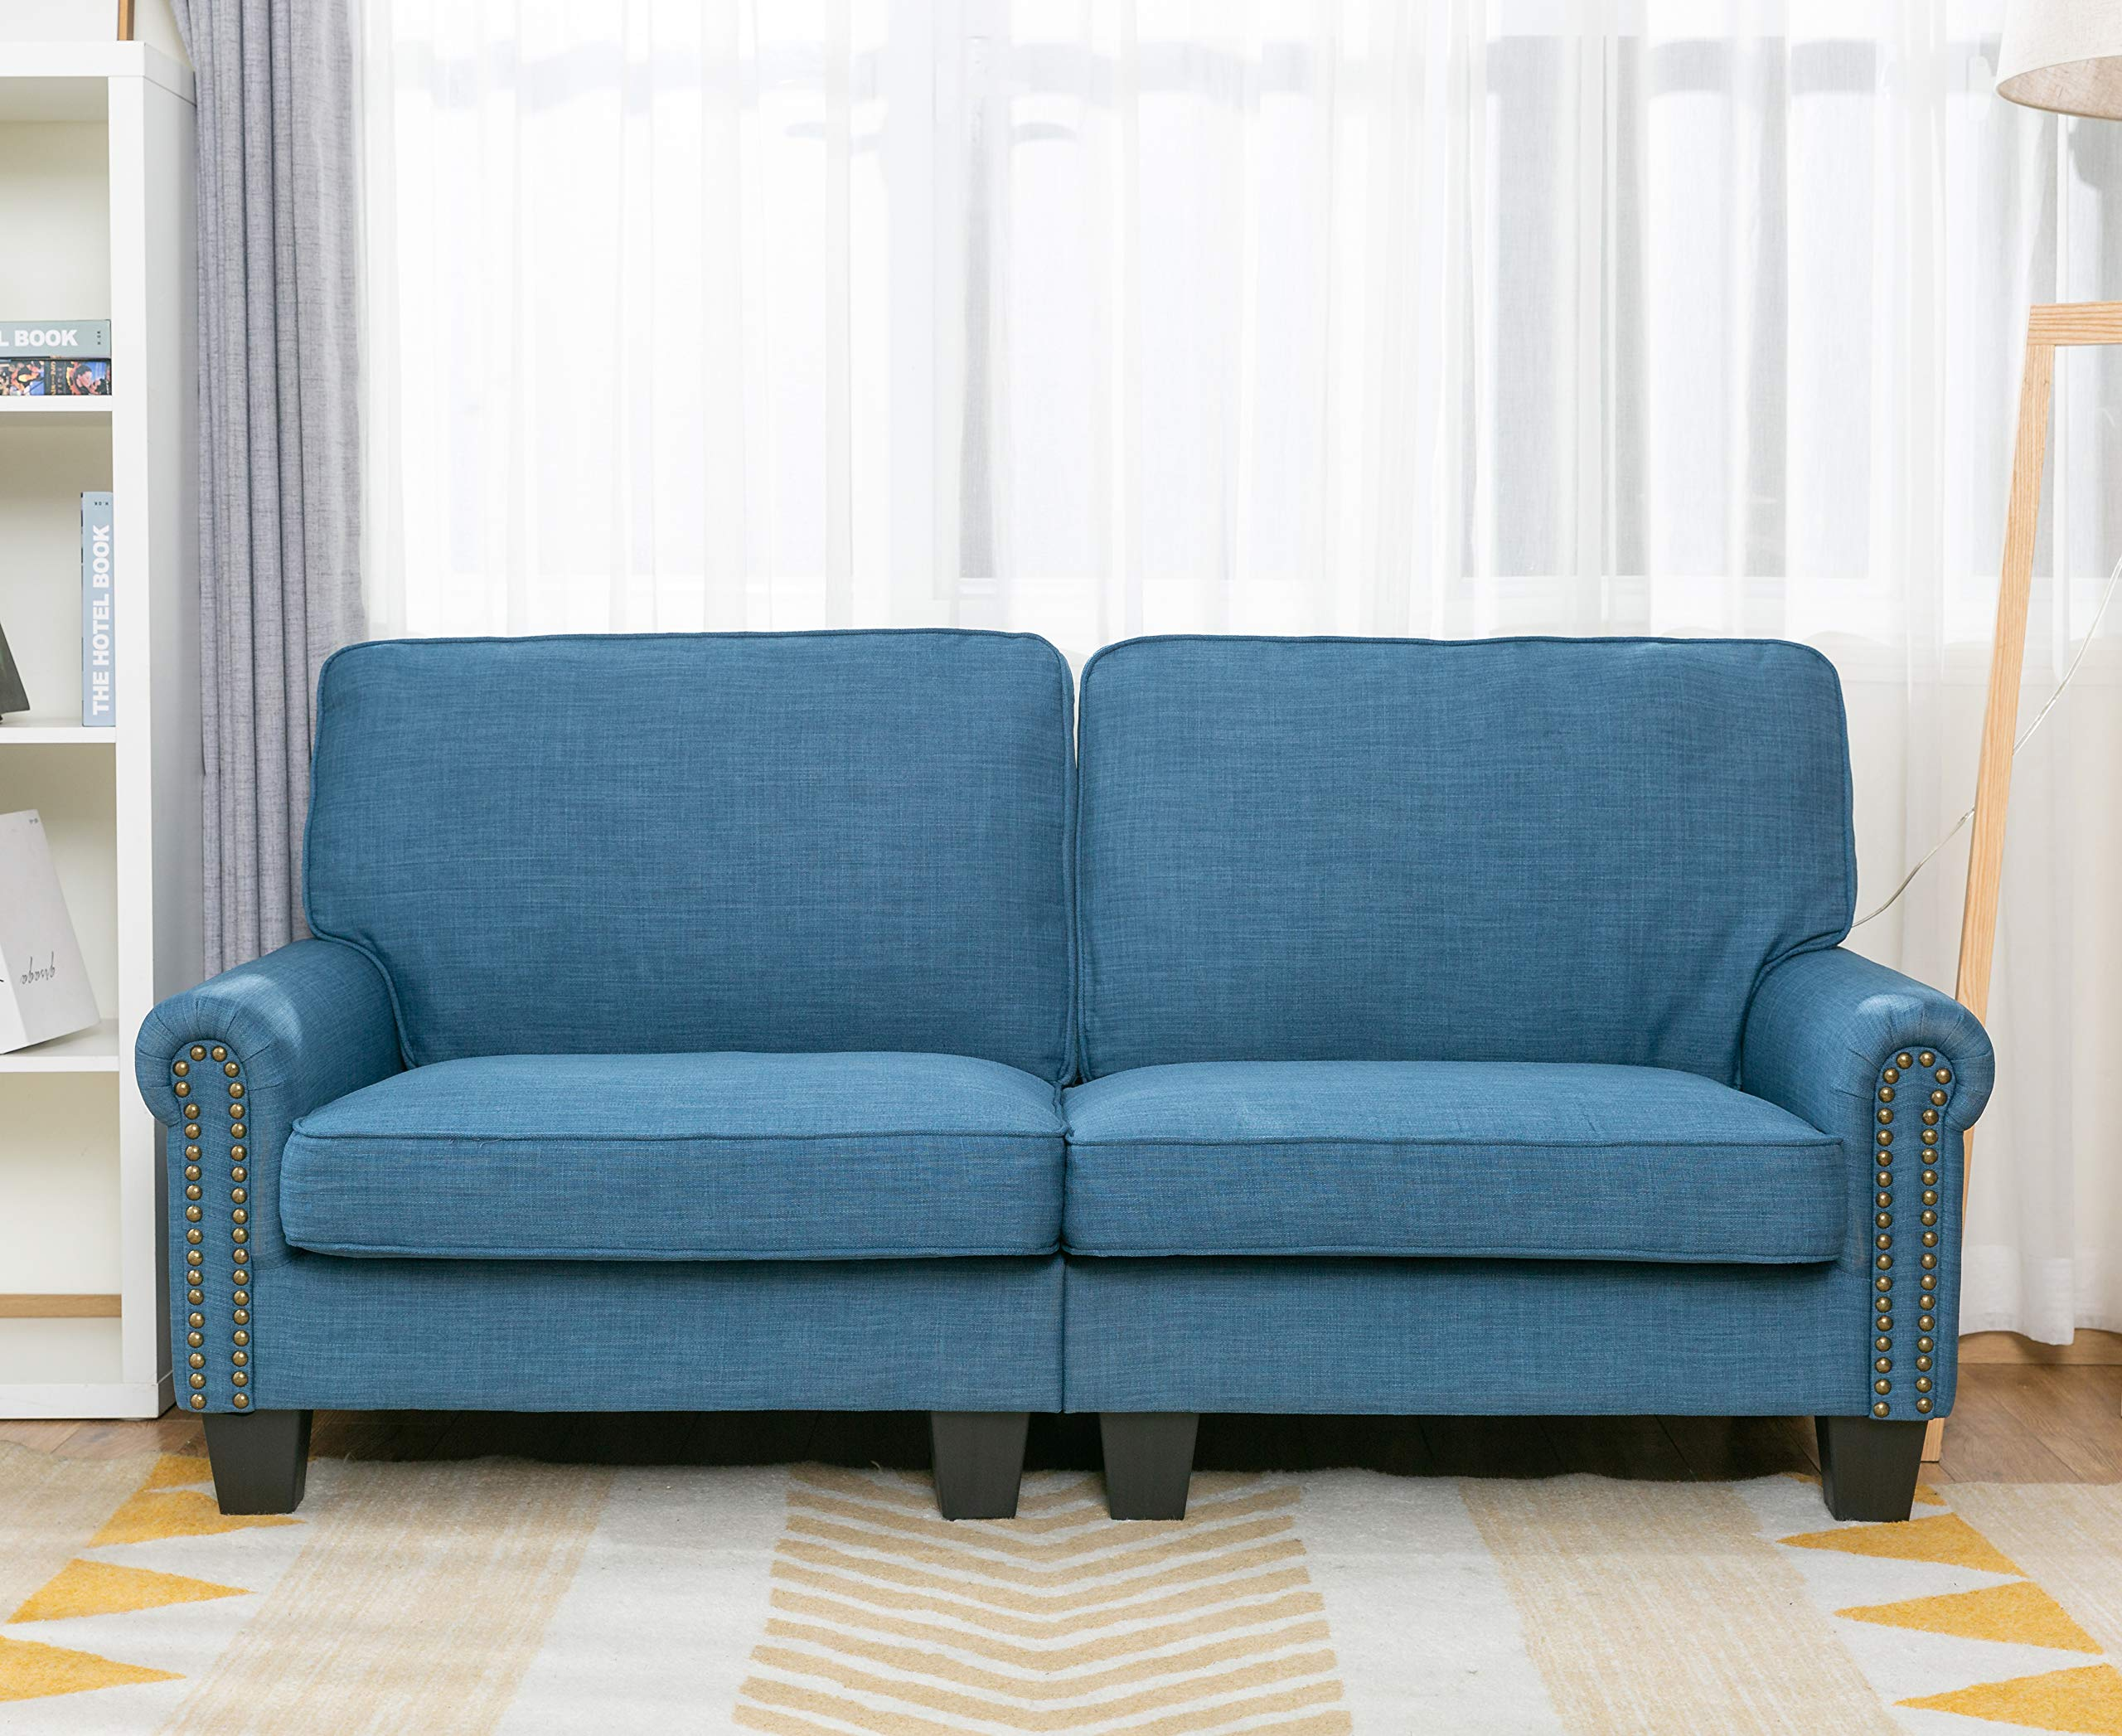 70 Inch Sofa for Living Room,Blue Upholstered Soft and Easily Assemble Couch and Sofa Loveseat,by LifeFair by LIFEFAIR